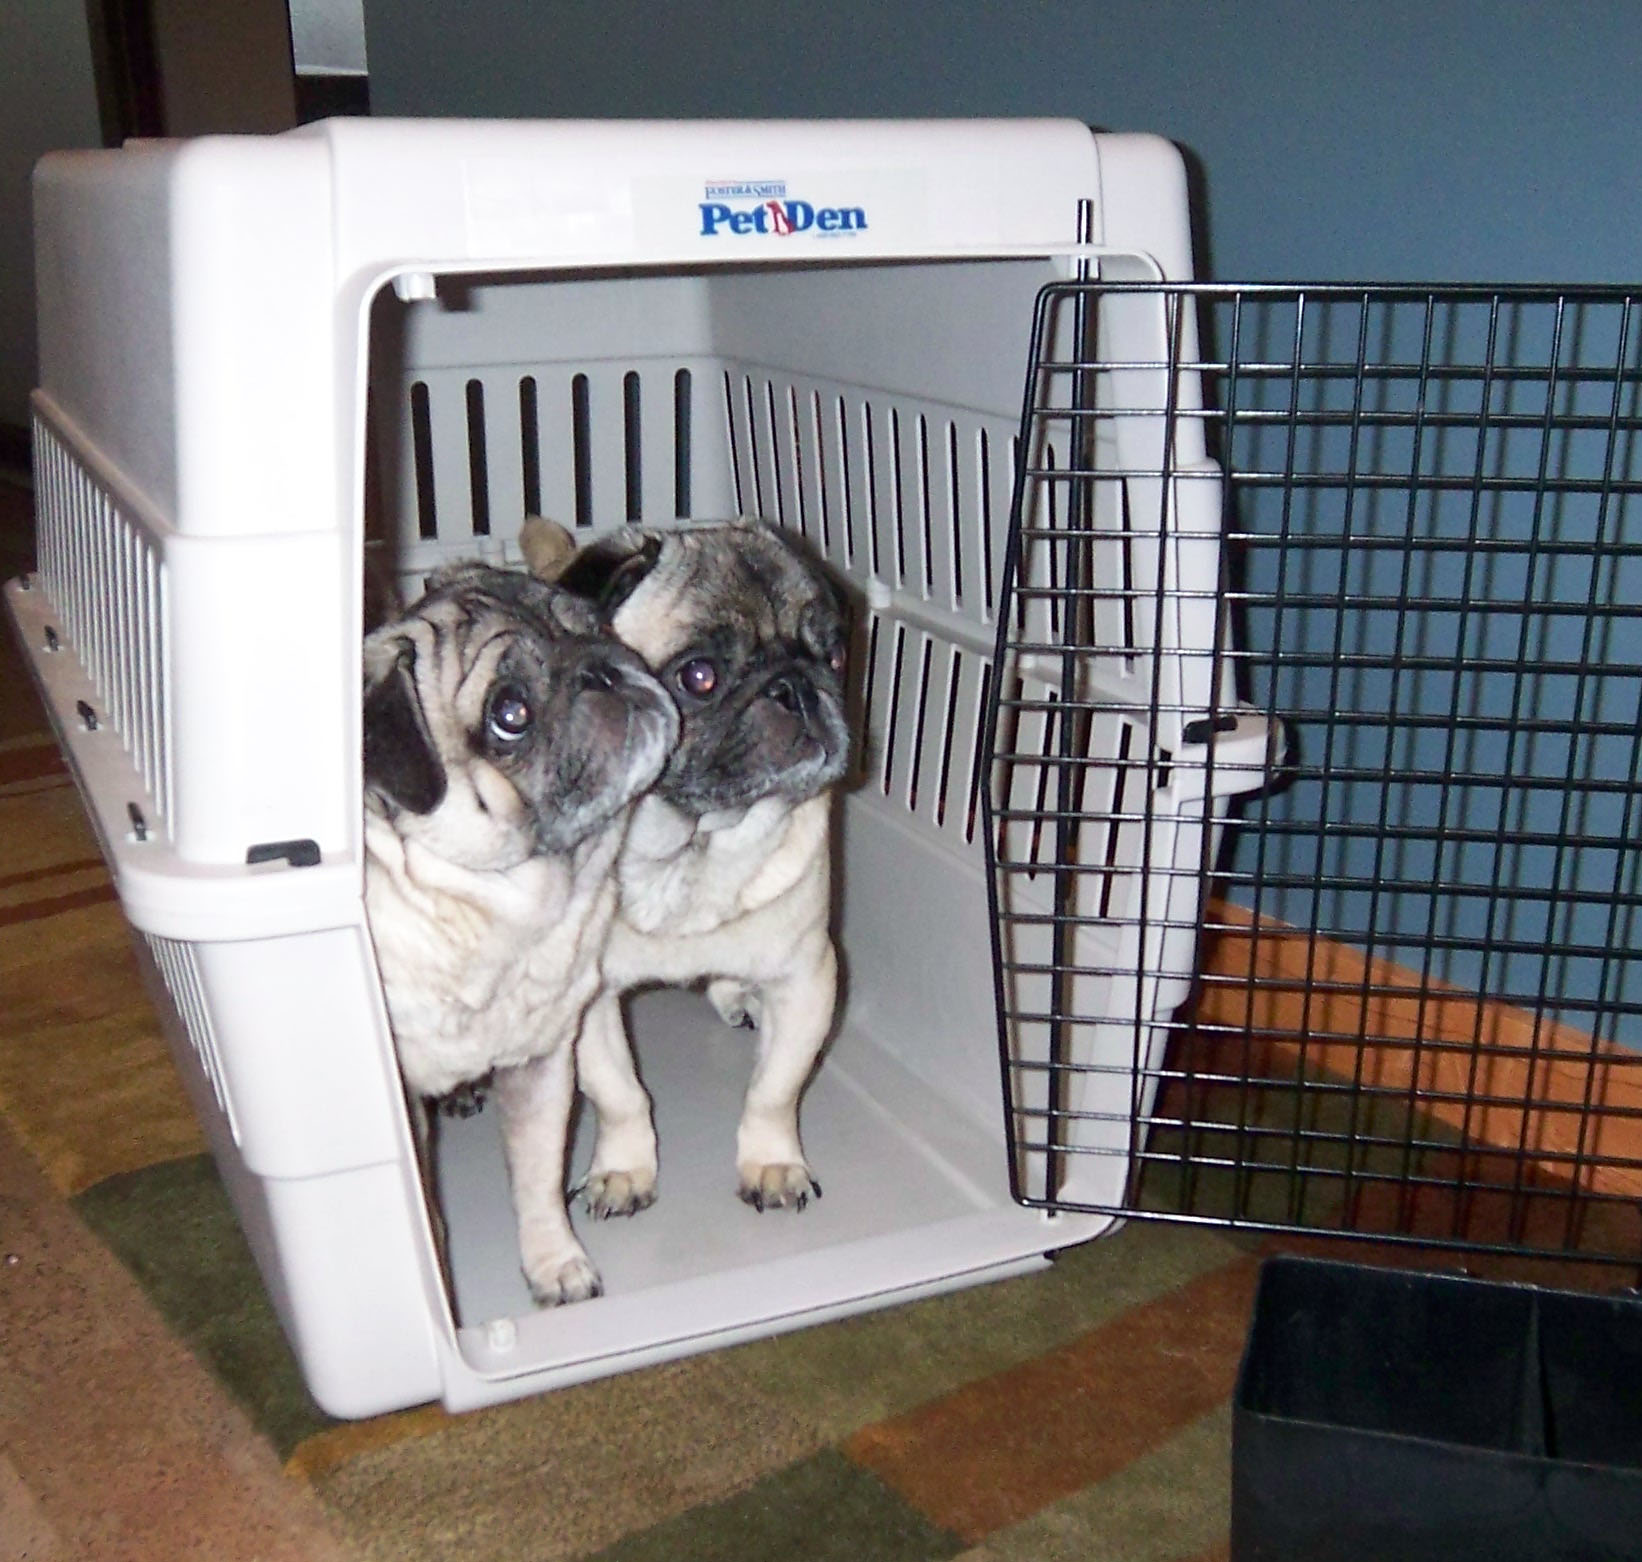 Can't we both just go in this big crate?